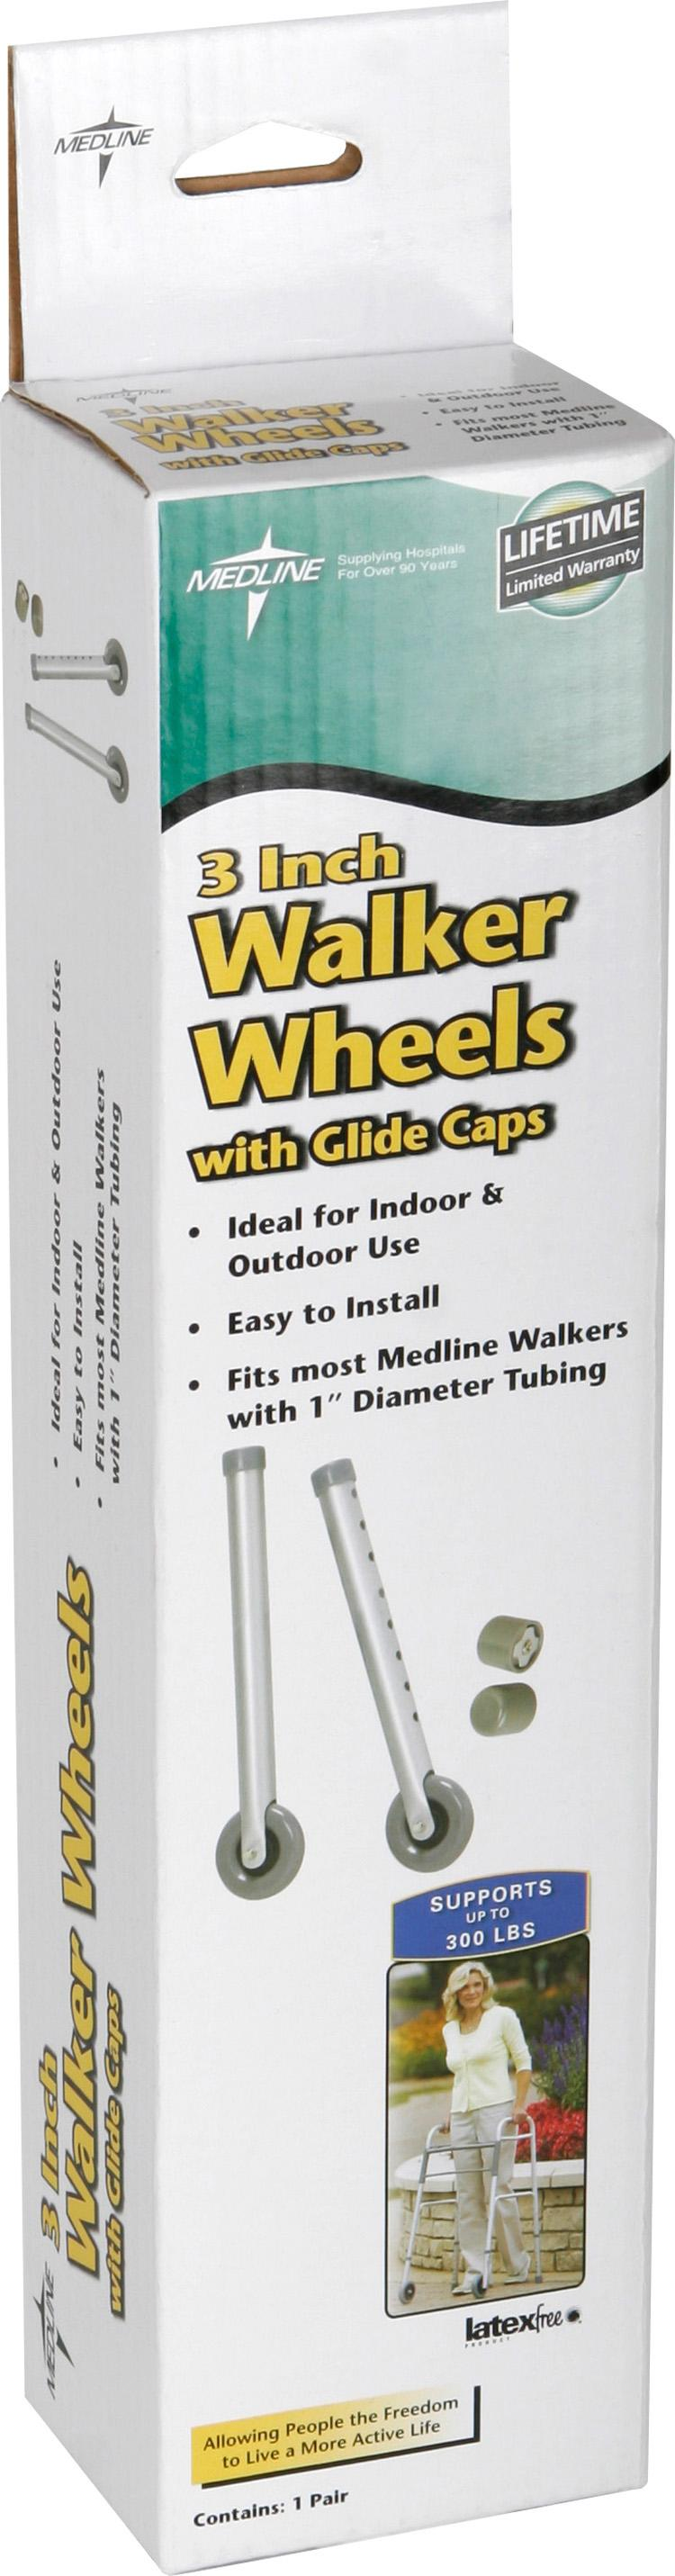 "Walker 3"" Replacement Casters, Set of 2"